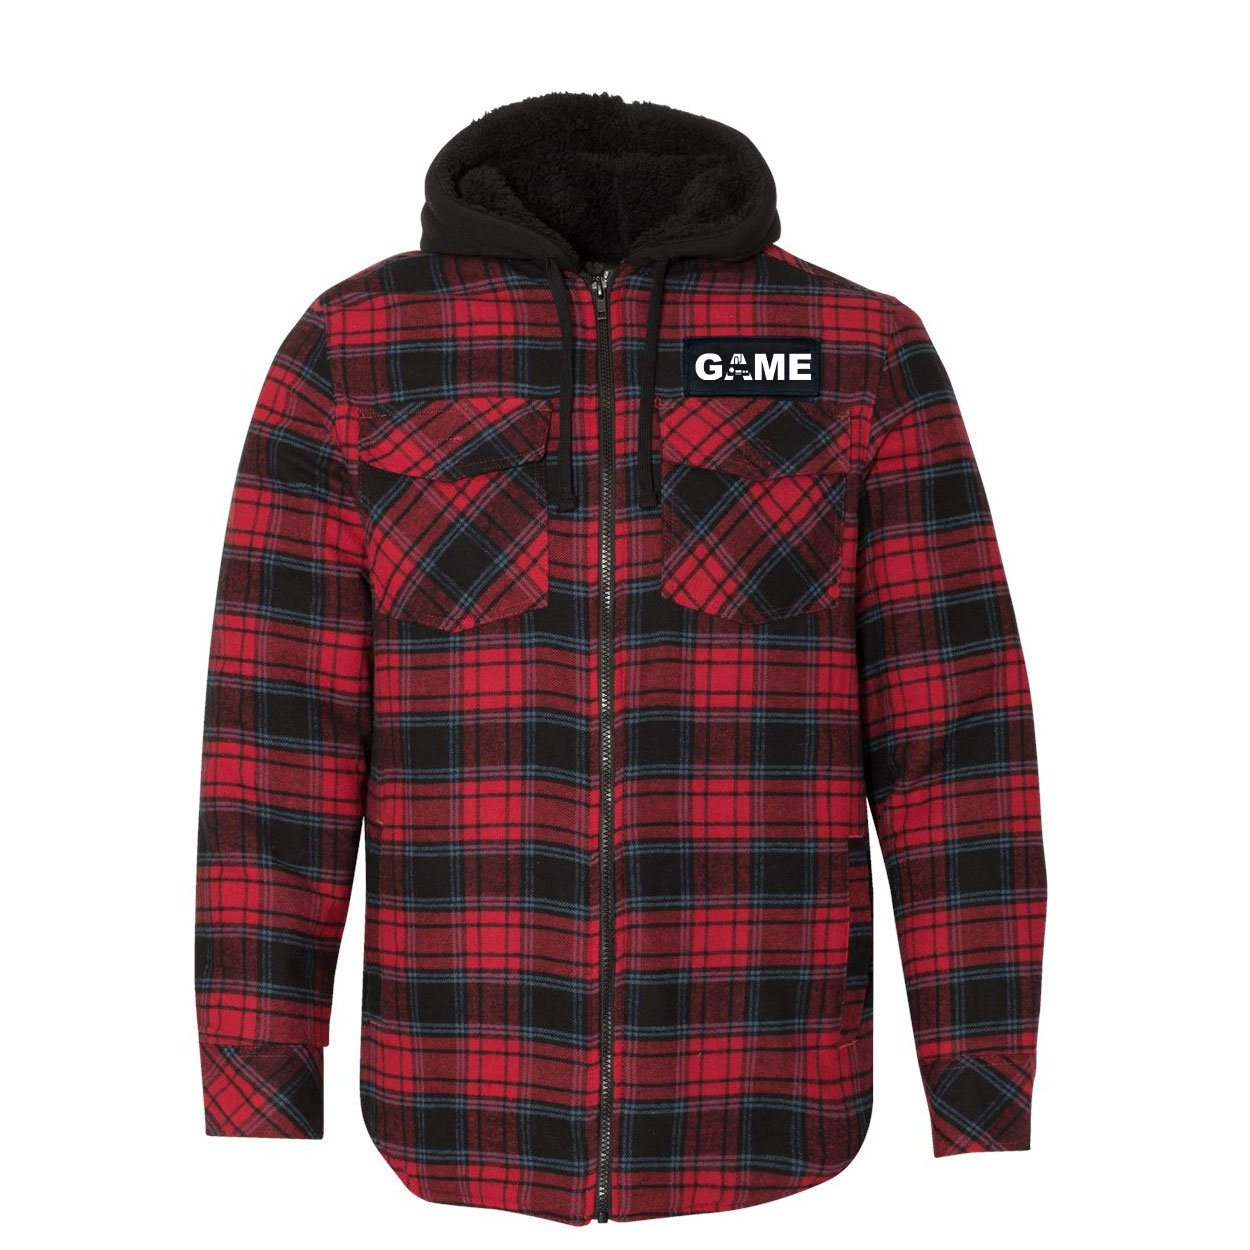 Game Controller Logo Classic Unisex Full Zip Woven Patch Hooded Flannel Jacket Red/Black Buffalo (White Logo)